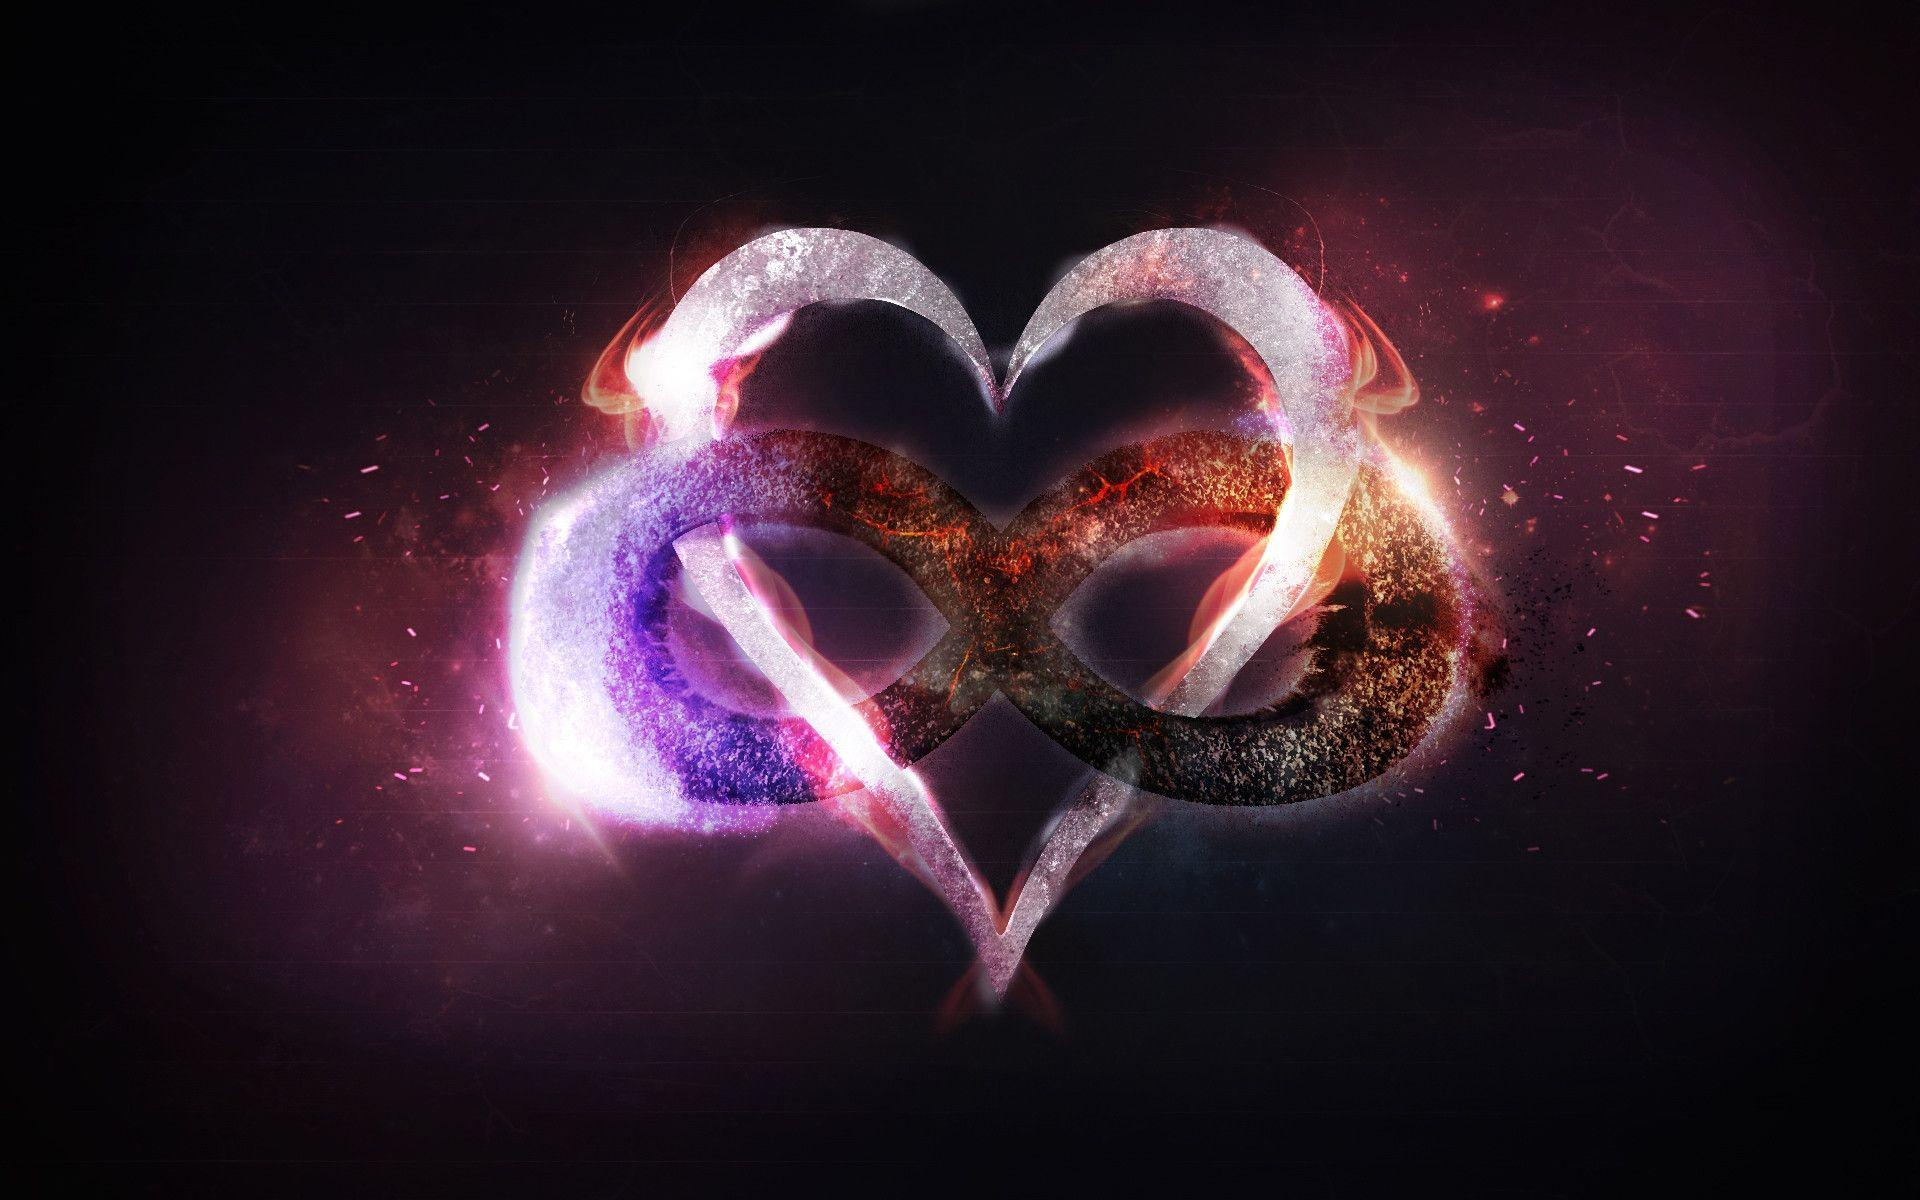 Love Symbol Wallpaper In Hd : Really Pretty Backgrounds - Wallpaper cave